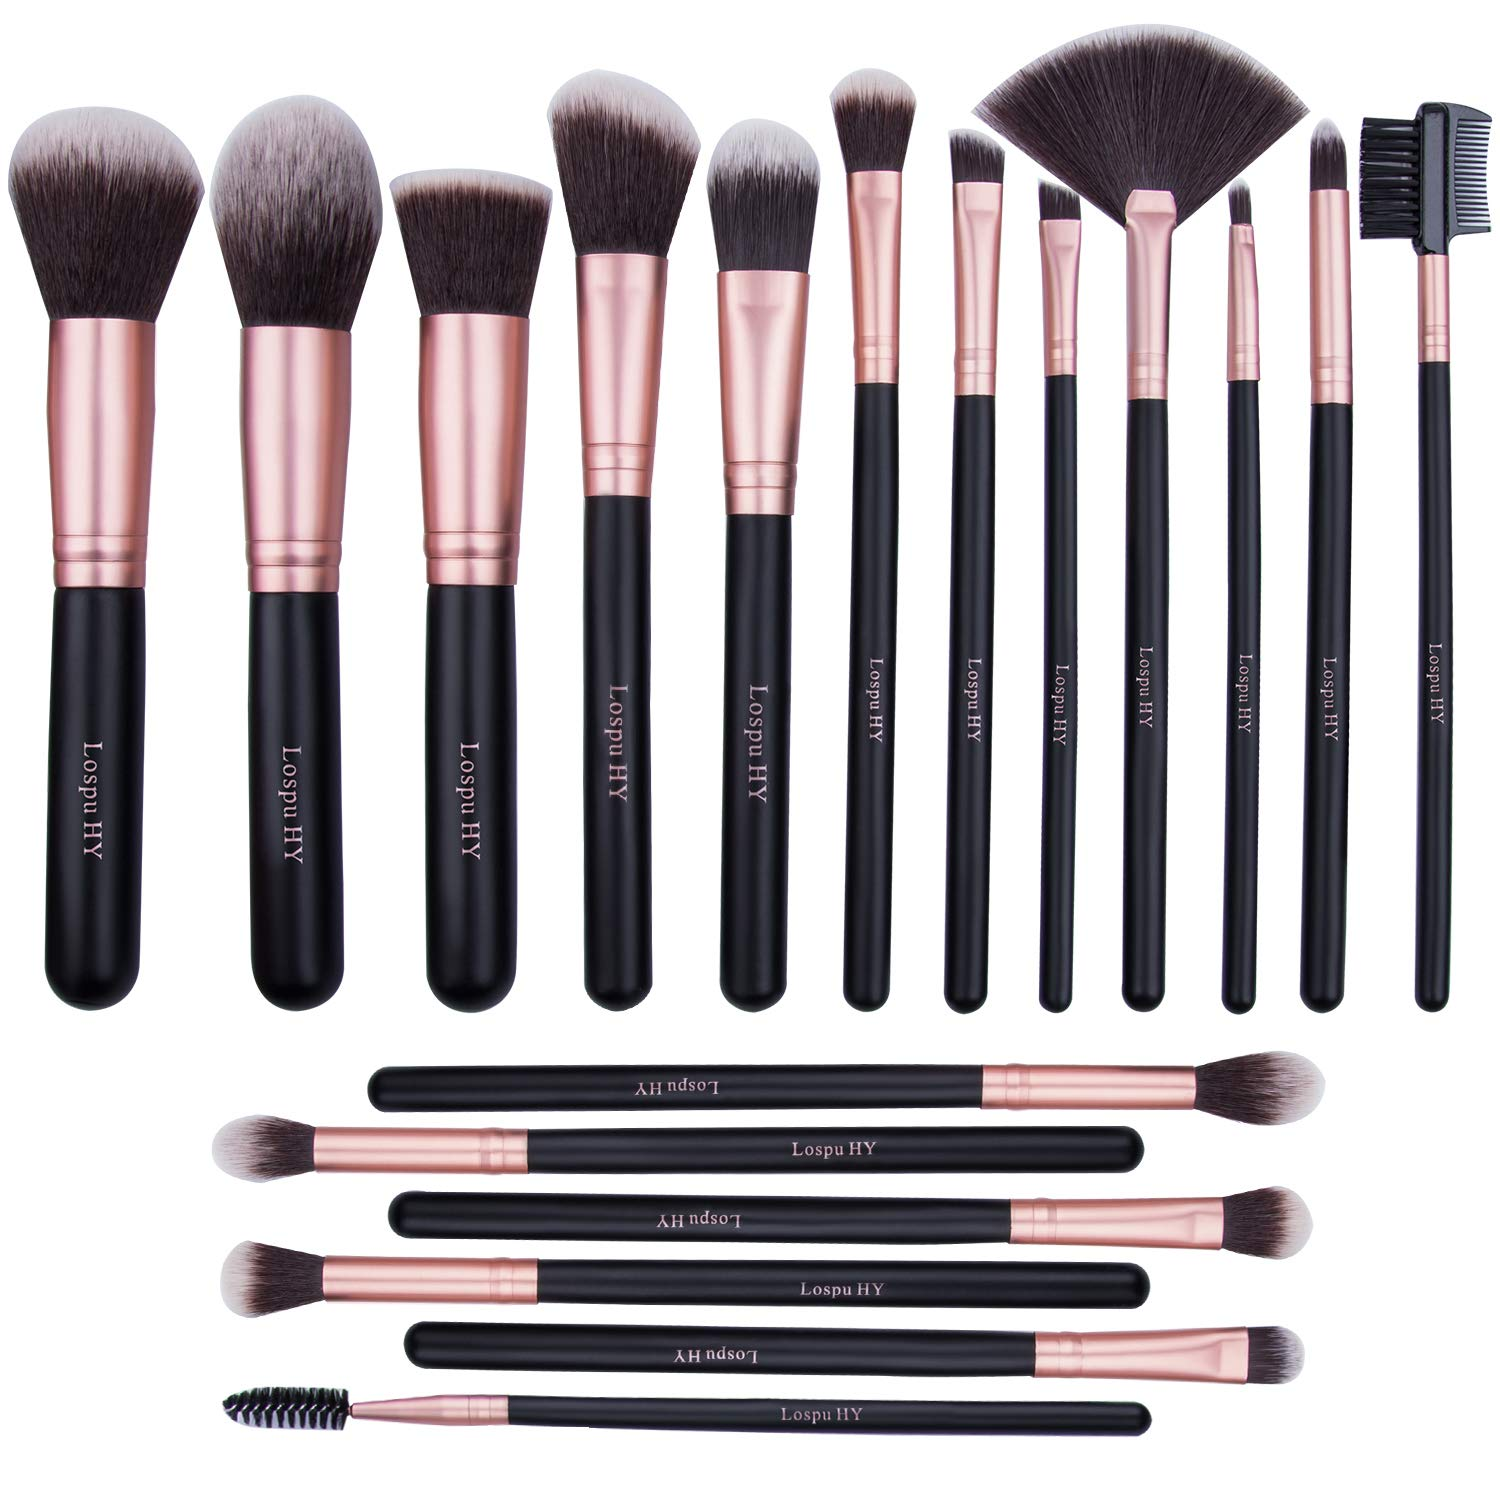 Lospu HY Makeup Brushes 18 Piece Makeup Brush Set Professional Wood Handle Premium Synthetic Kabuki Foundation Blending Face Powder Blush Concealer Contour Eyeshadow Makeup Brush Brochas De Maquillaje